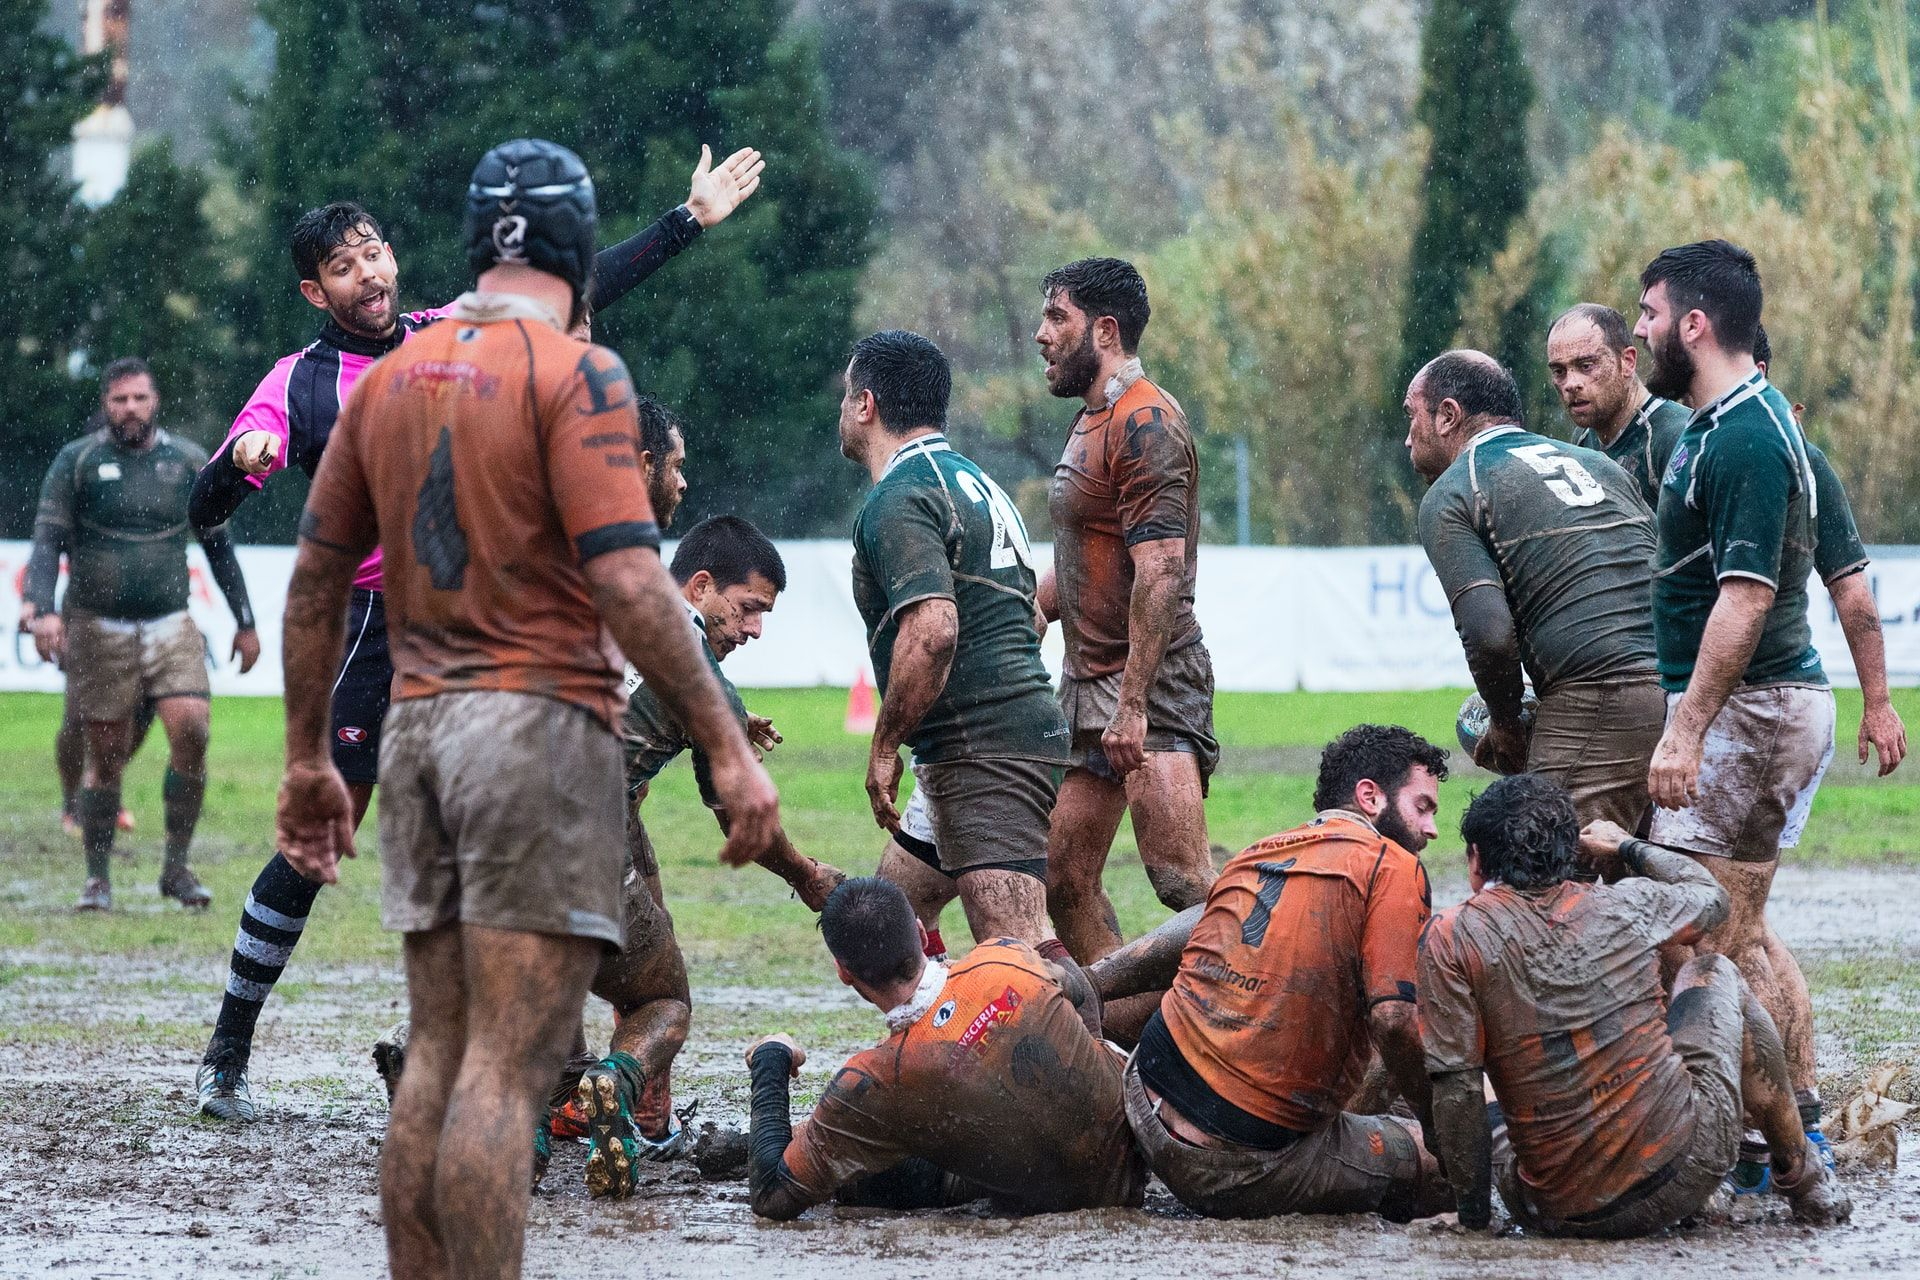 /leave-scrum-to-rugby-4-major-issues-with-using-scrum-gp2x3uyi feature image